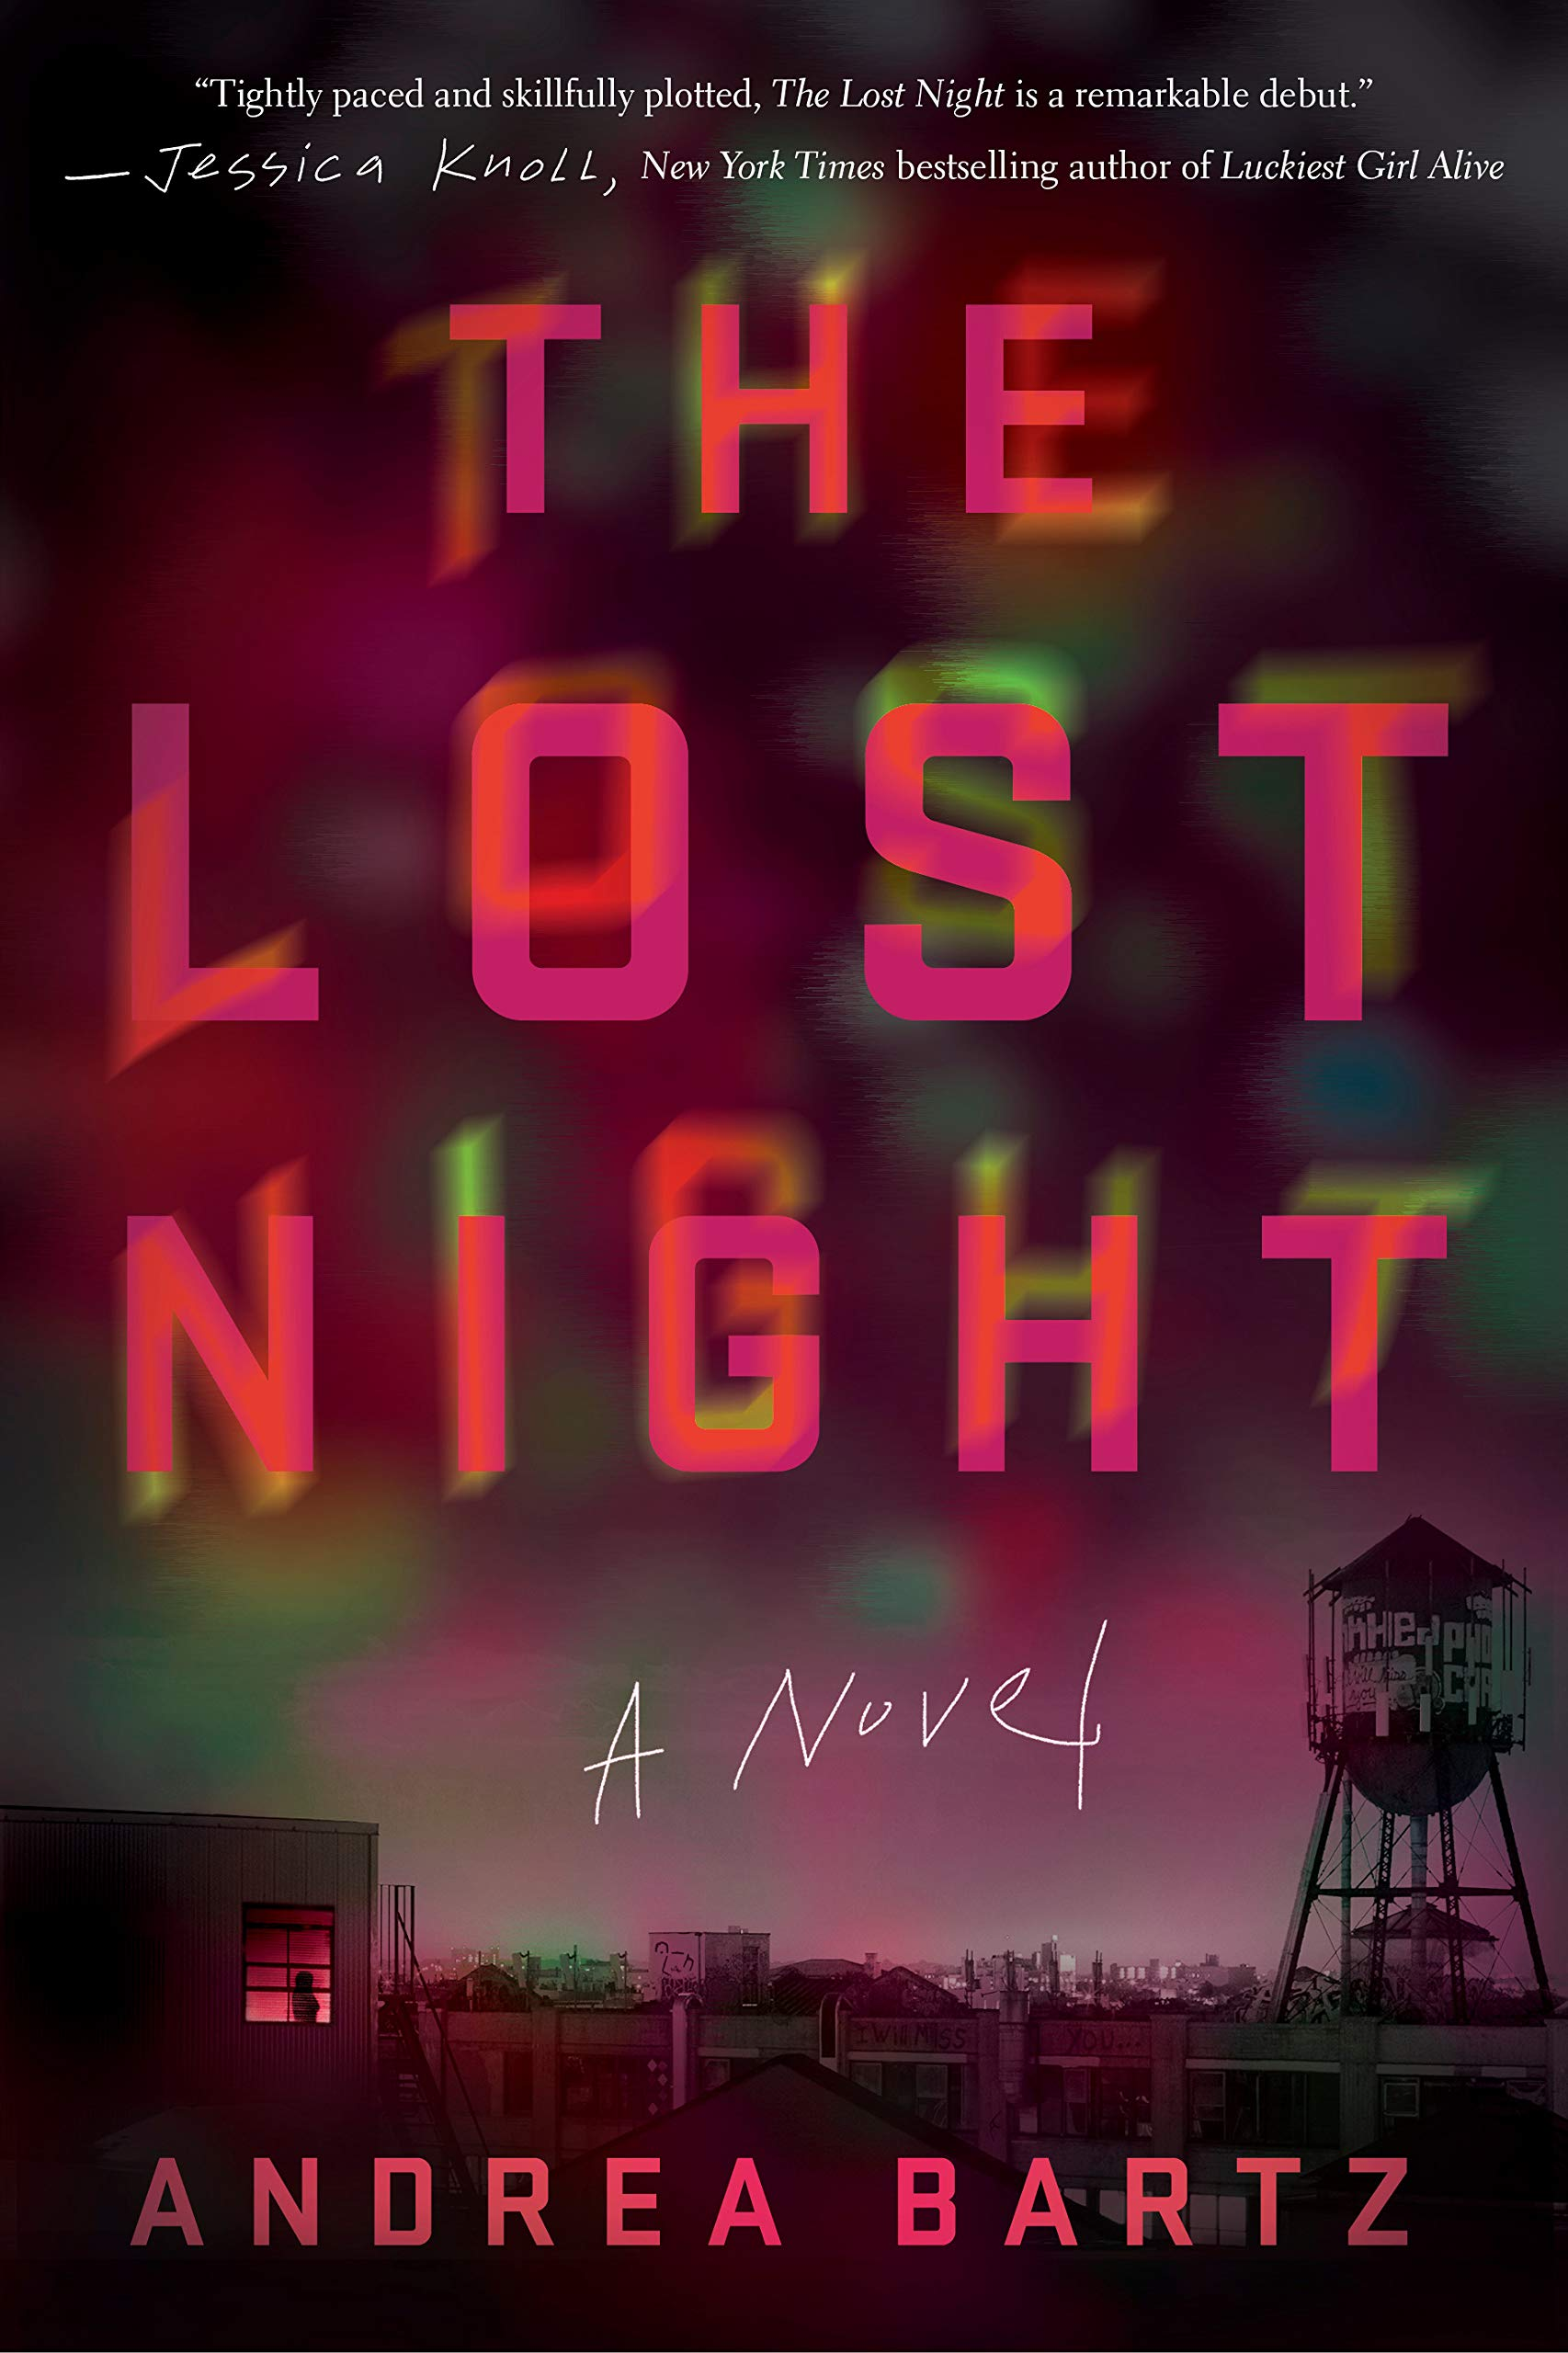 Image result for The Lost Night by Andrea Bartz